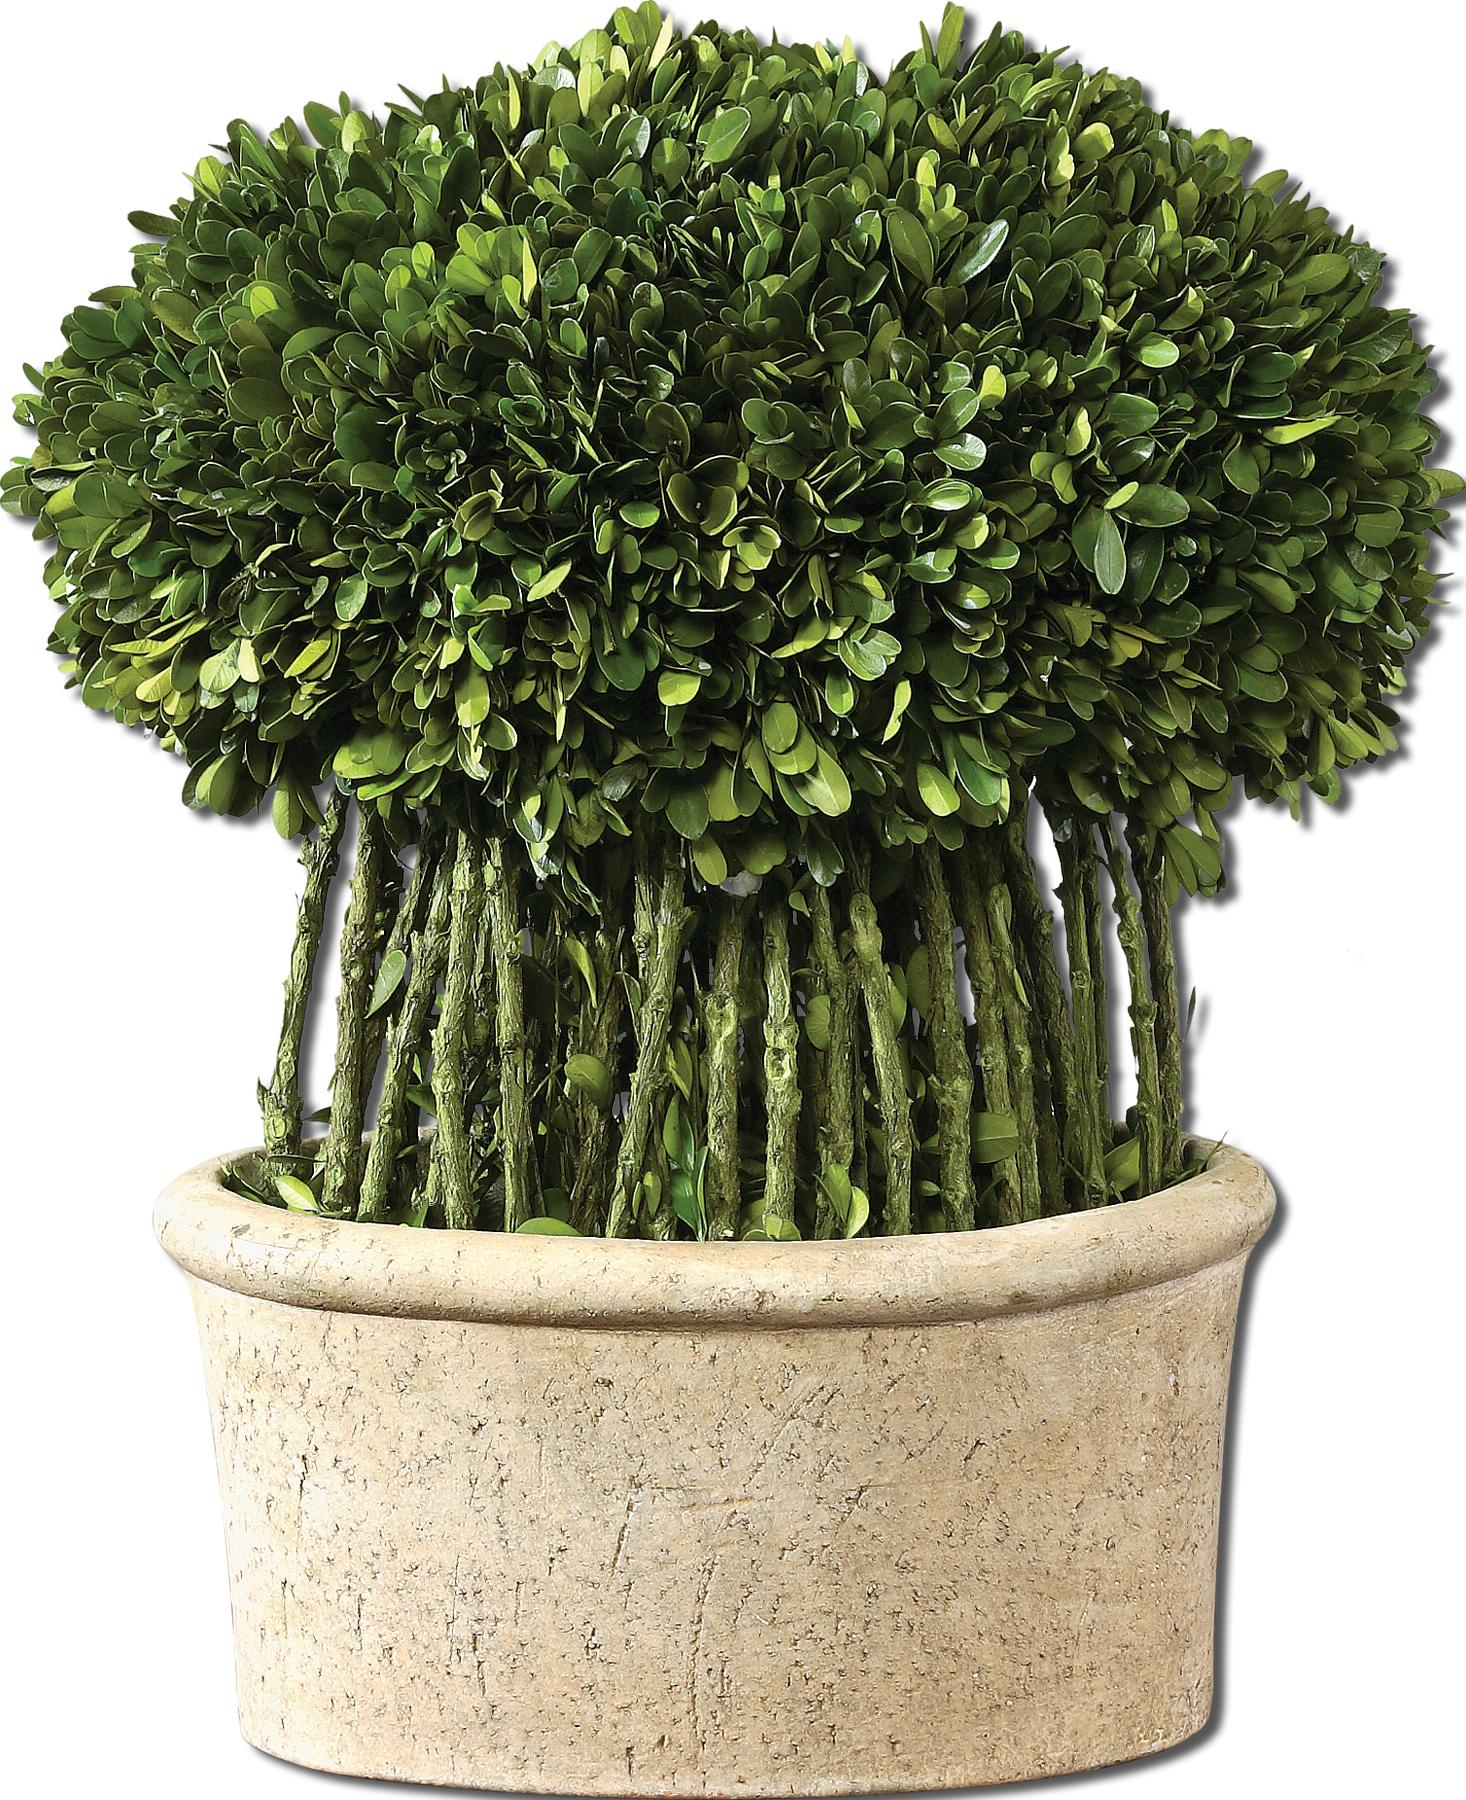 Uttermost Botanicals Preserved Boxwood Willow Topiary - Item Number: 60108